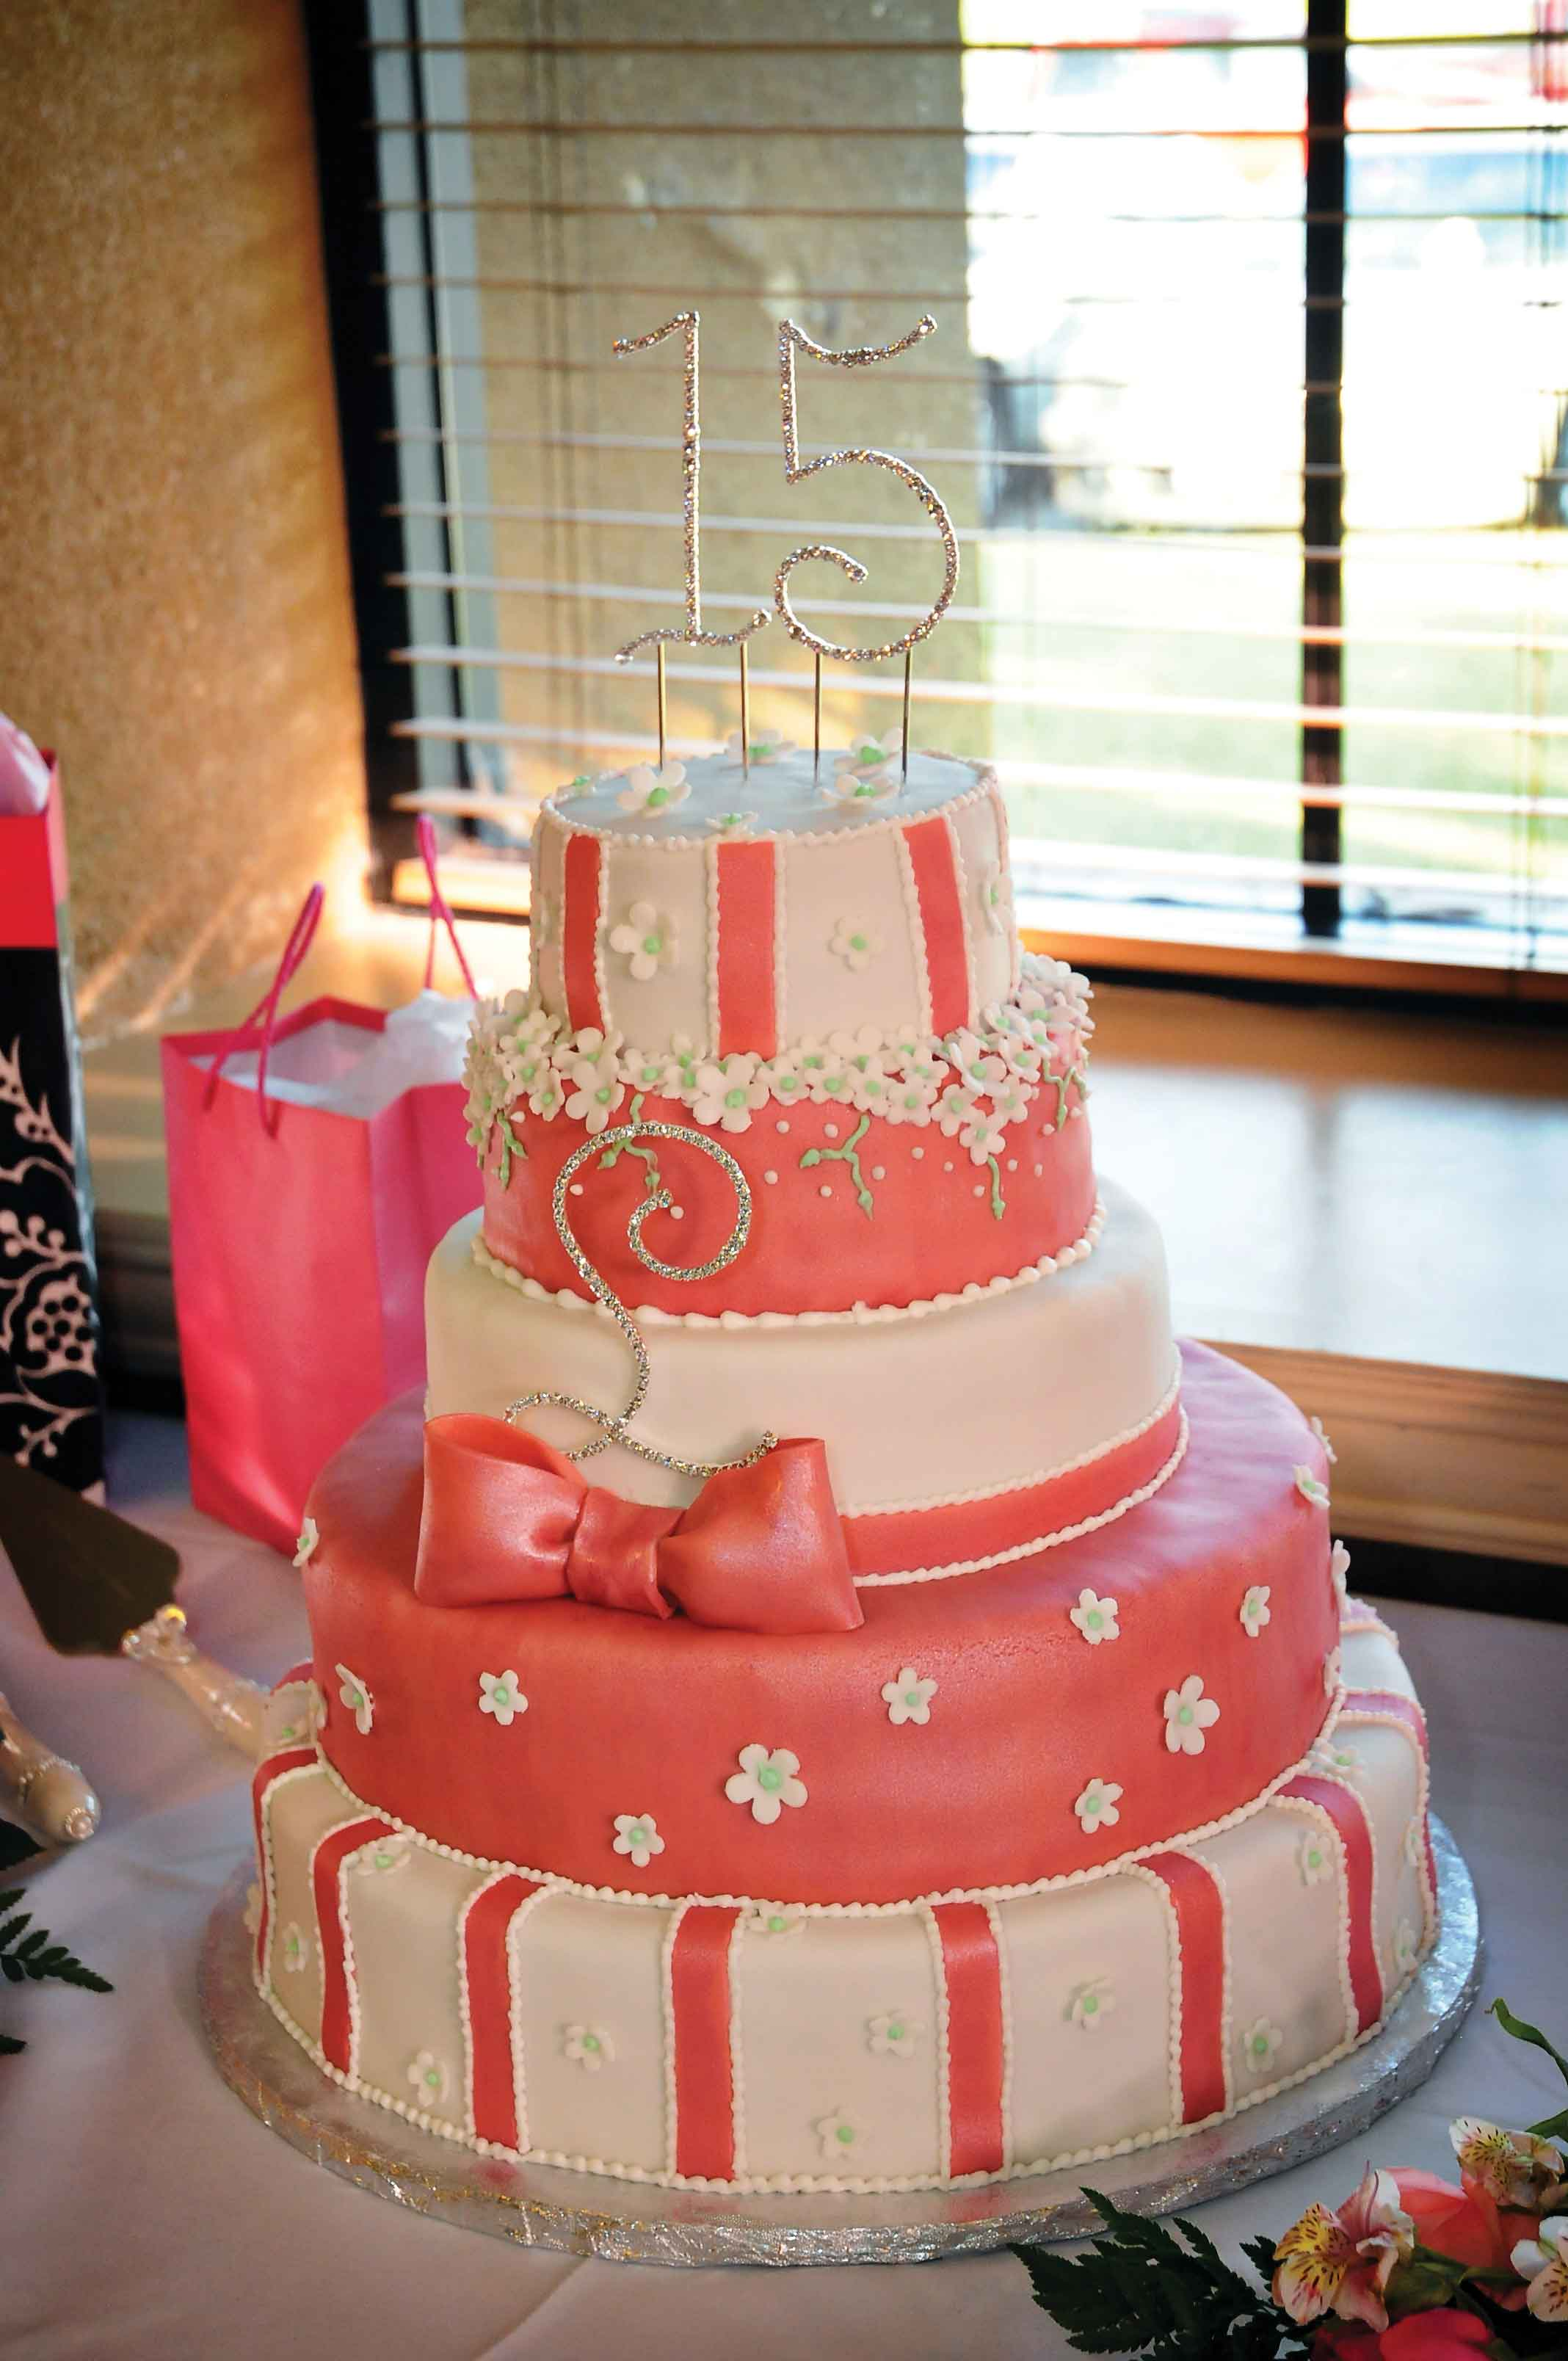 Add A Personal Touch To Your Quince Cake